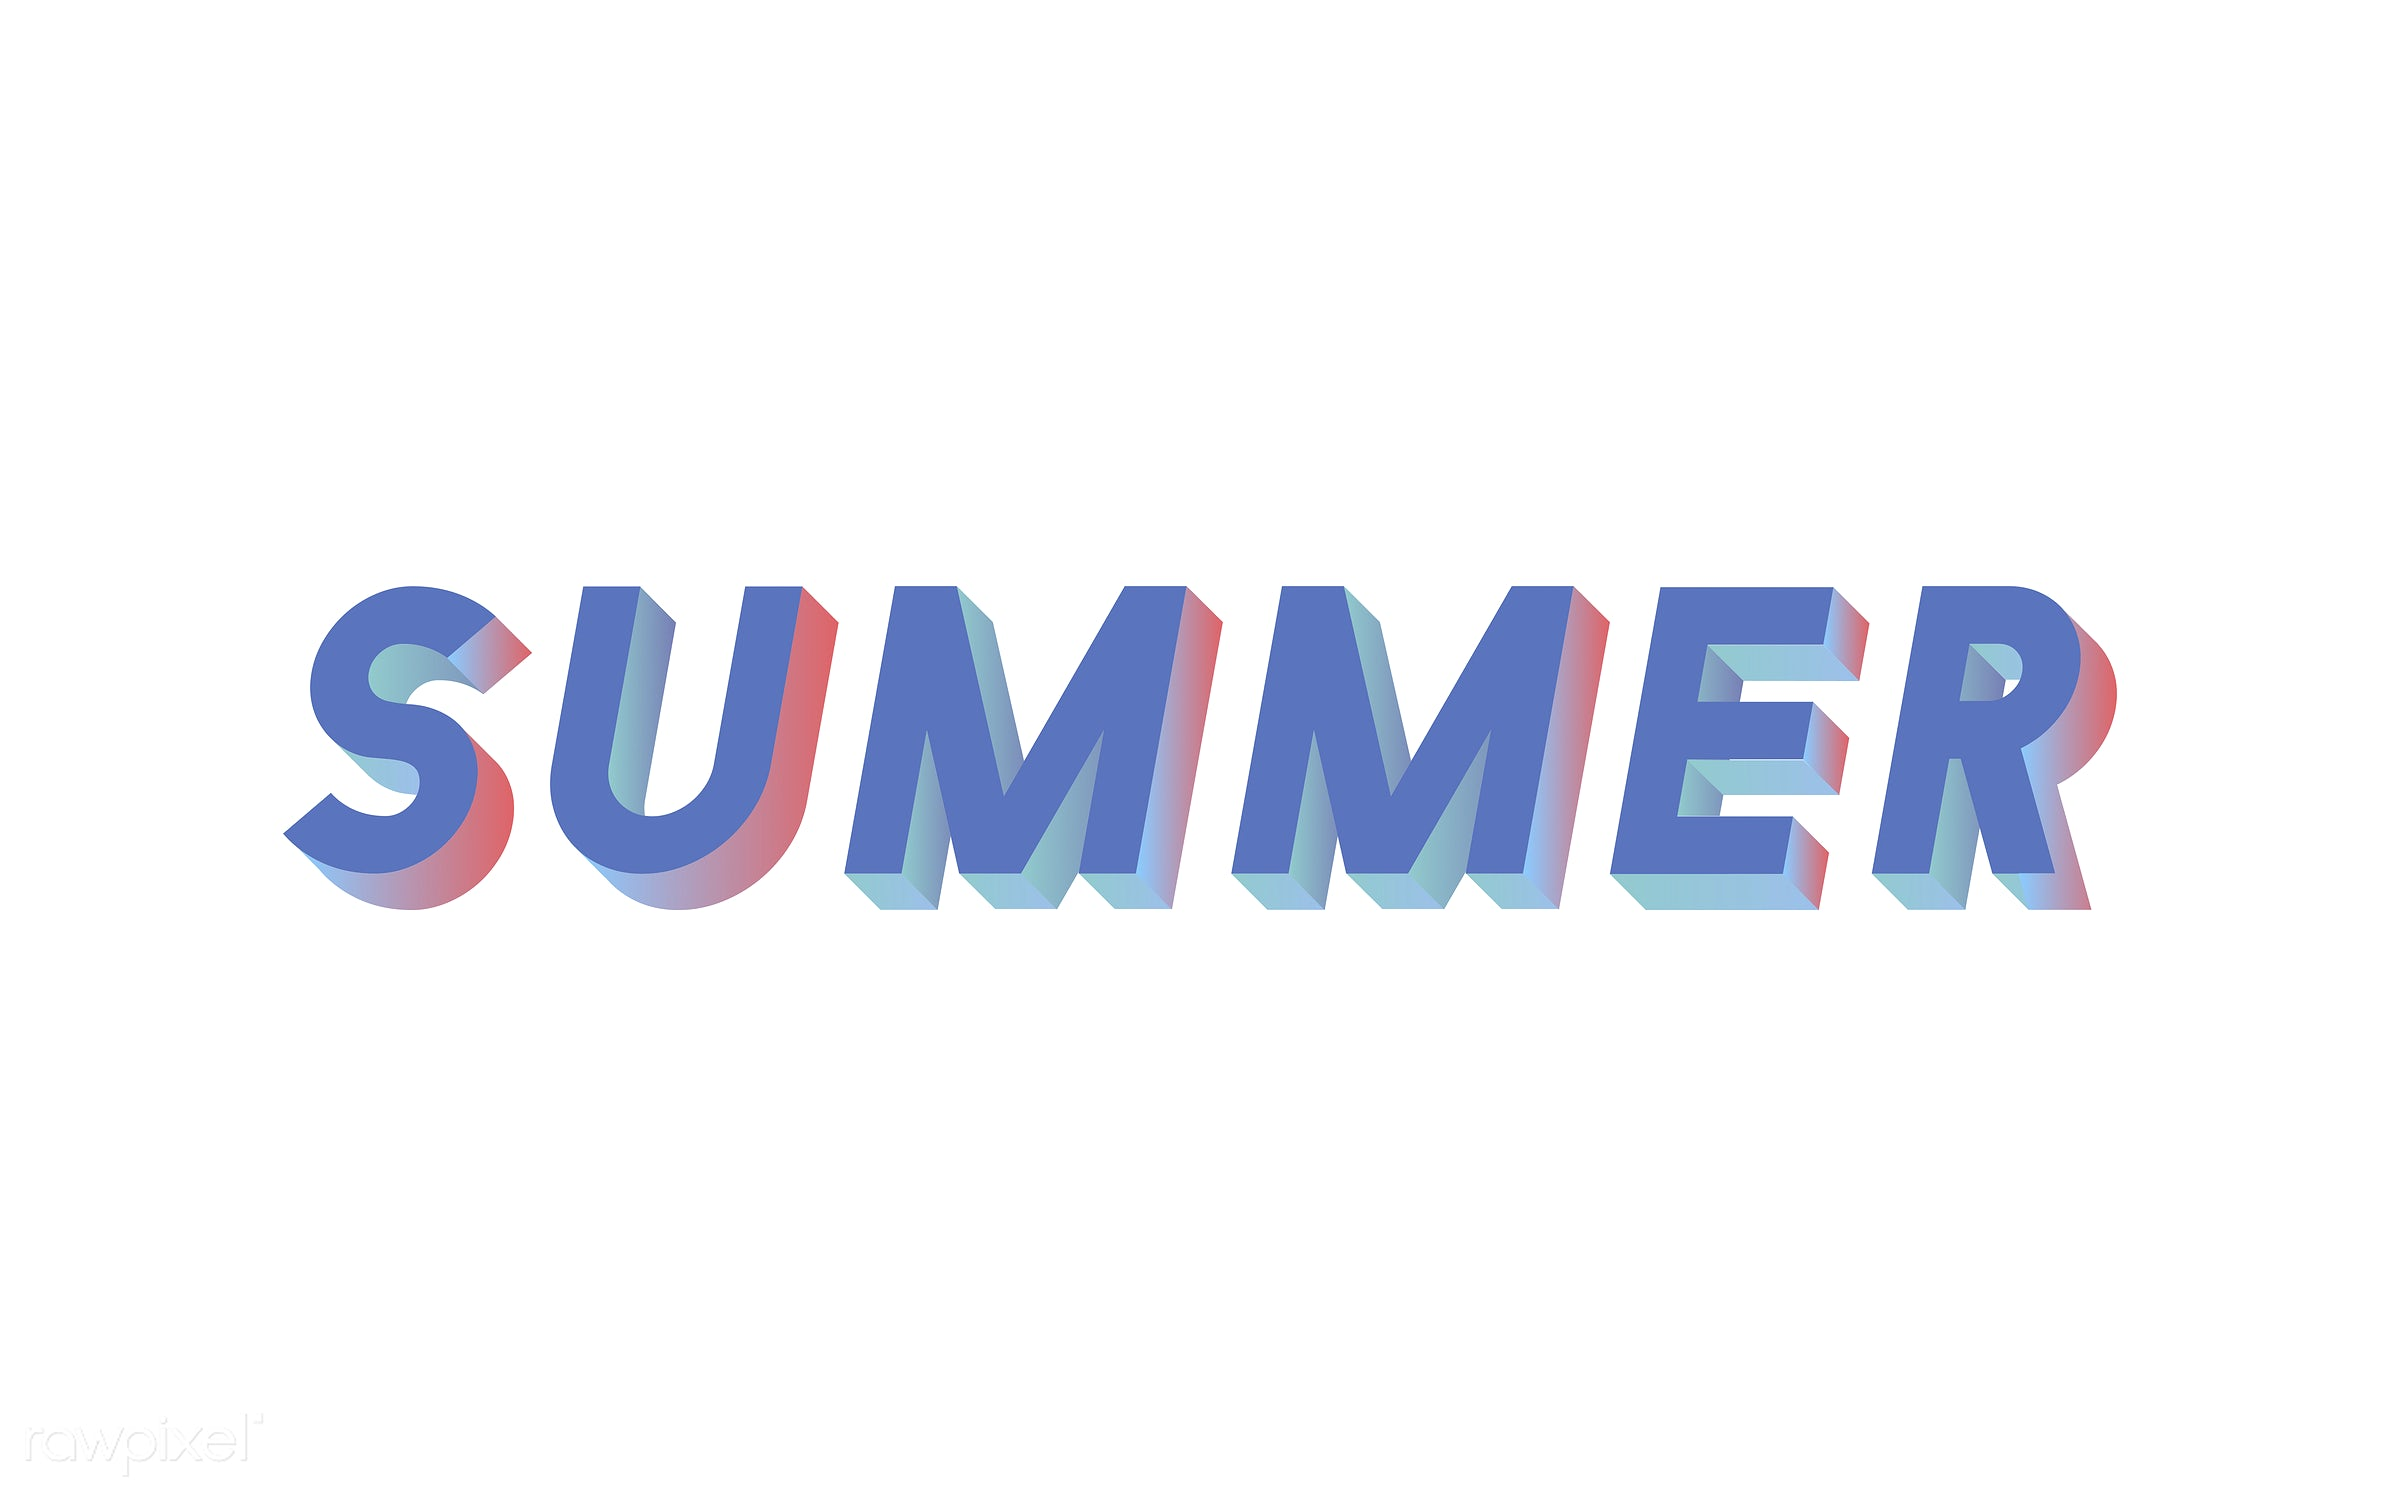 summer, 3d, blue, colorful, graphic, illustration, neon, three dimensional, vector, white, word